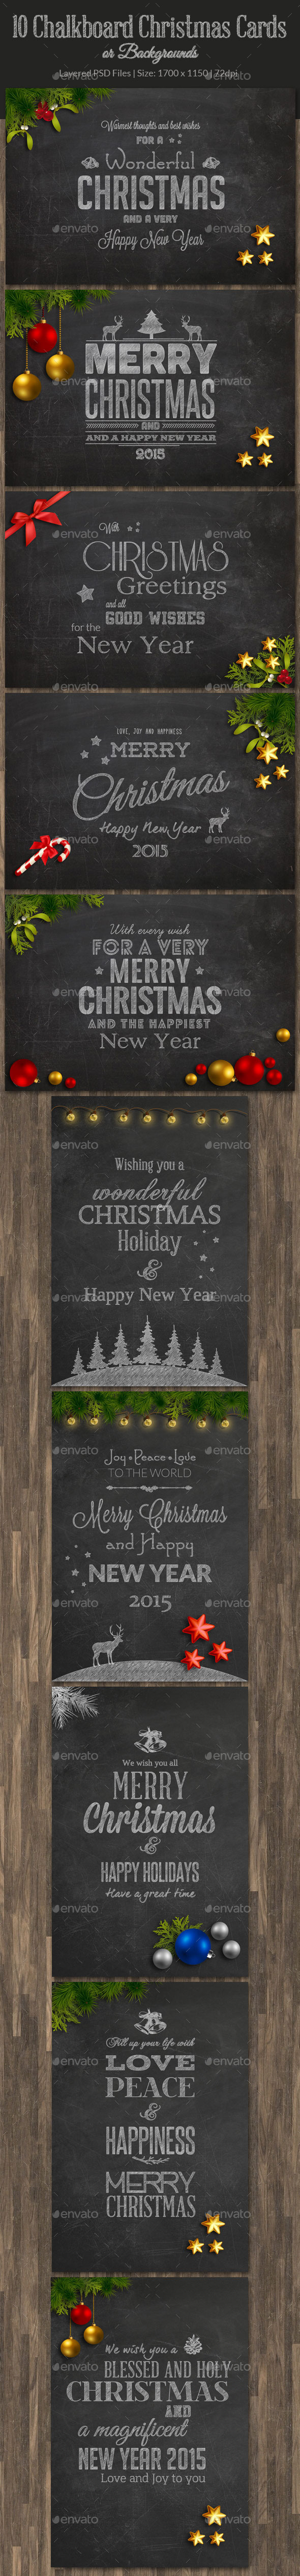 10 Christmas Chalkboard Cards - Backgrounds Graphics